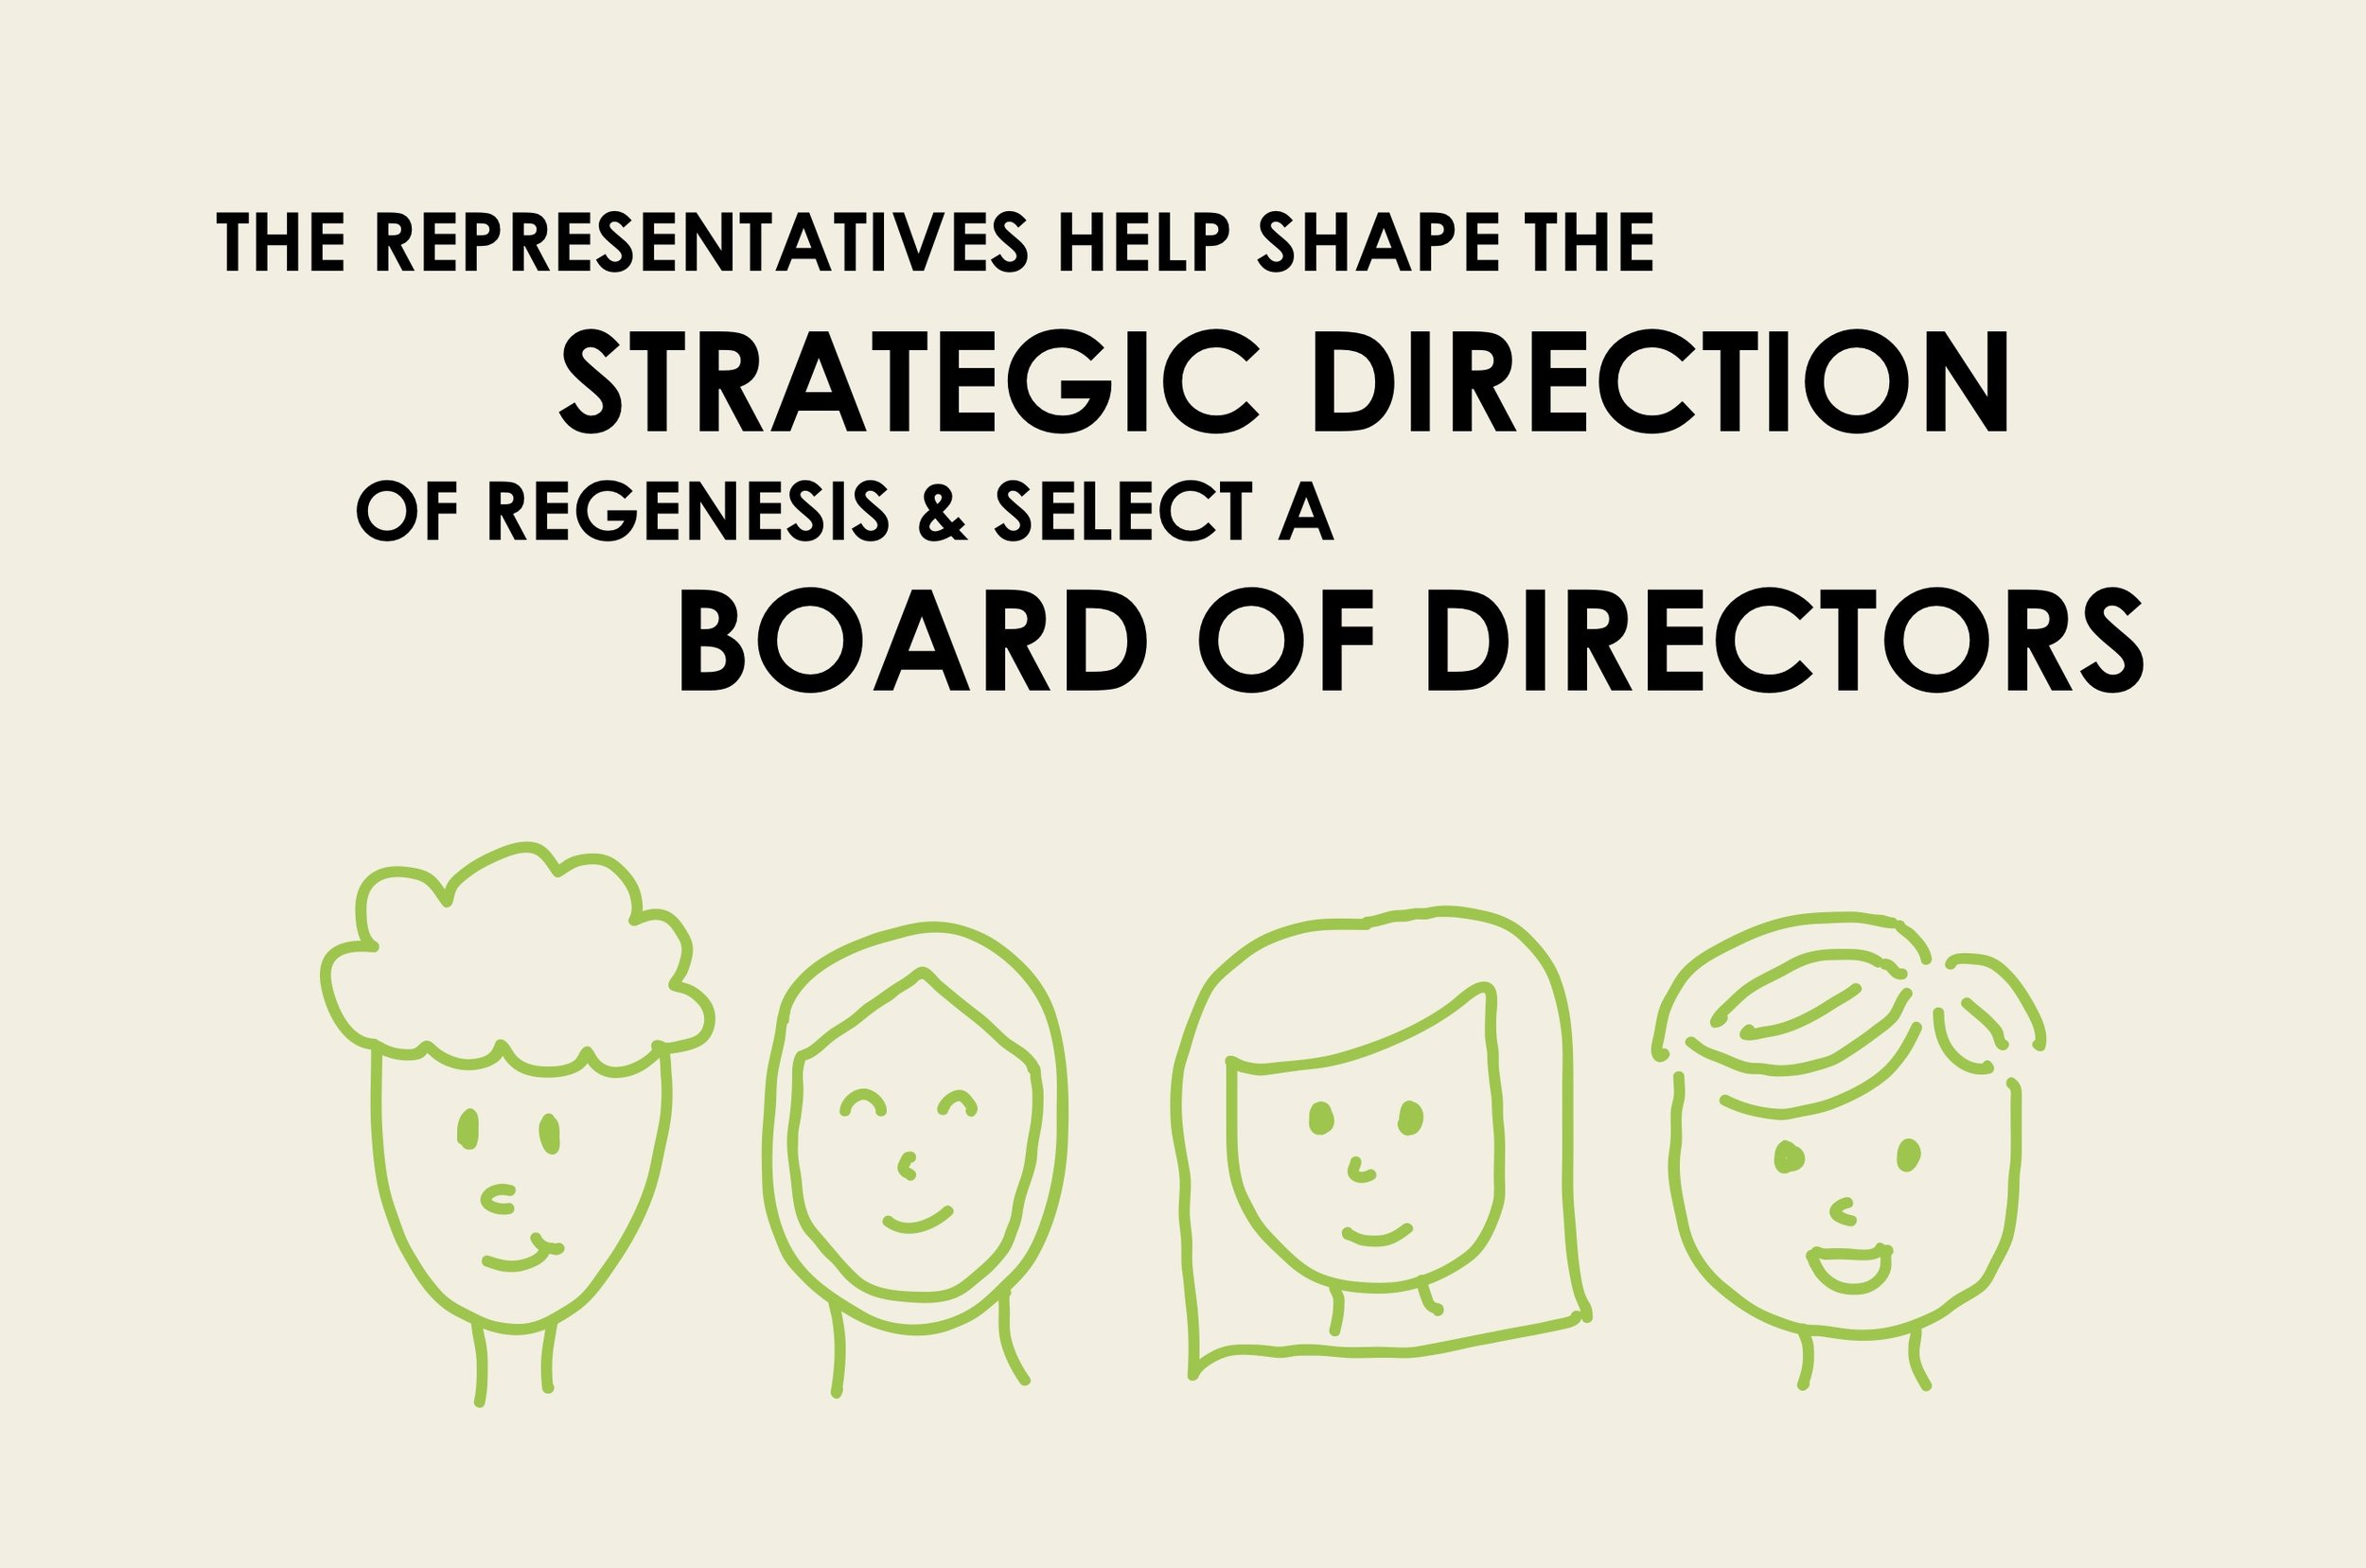 The representatives help shape the strategic direction and select a board of directors.